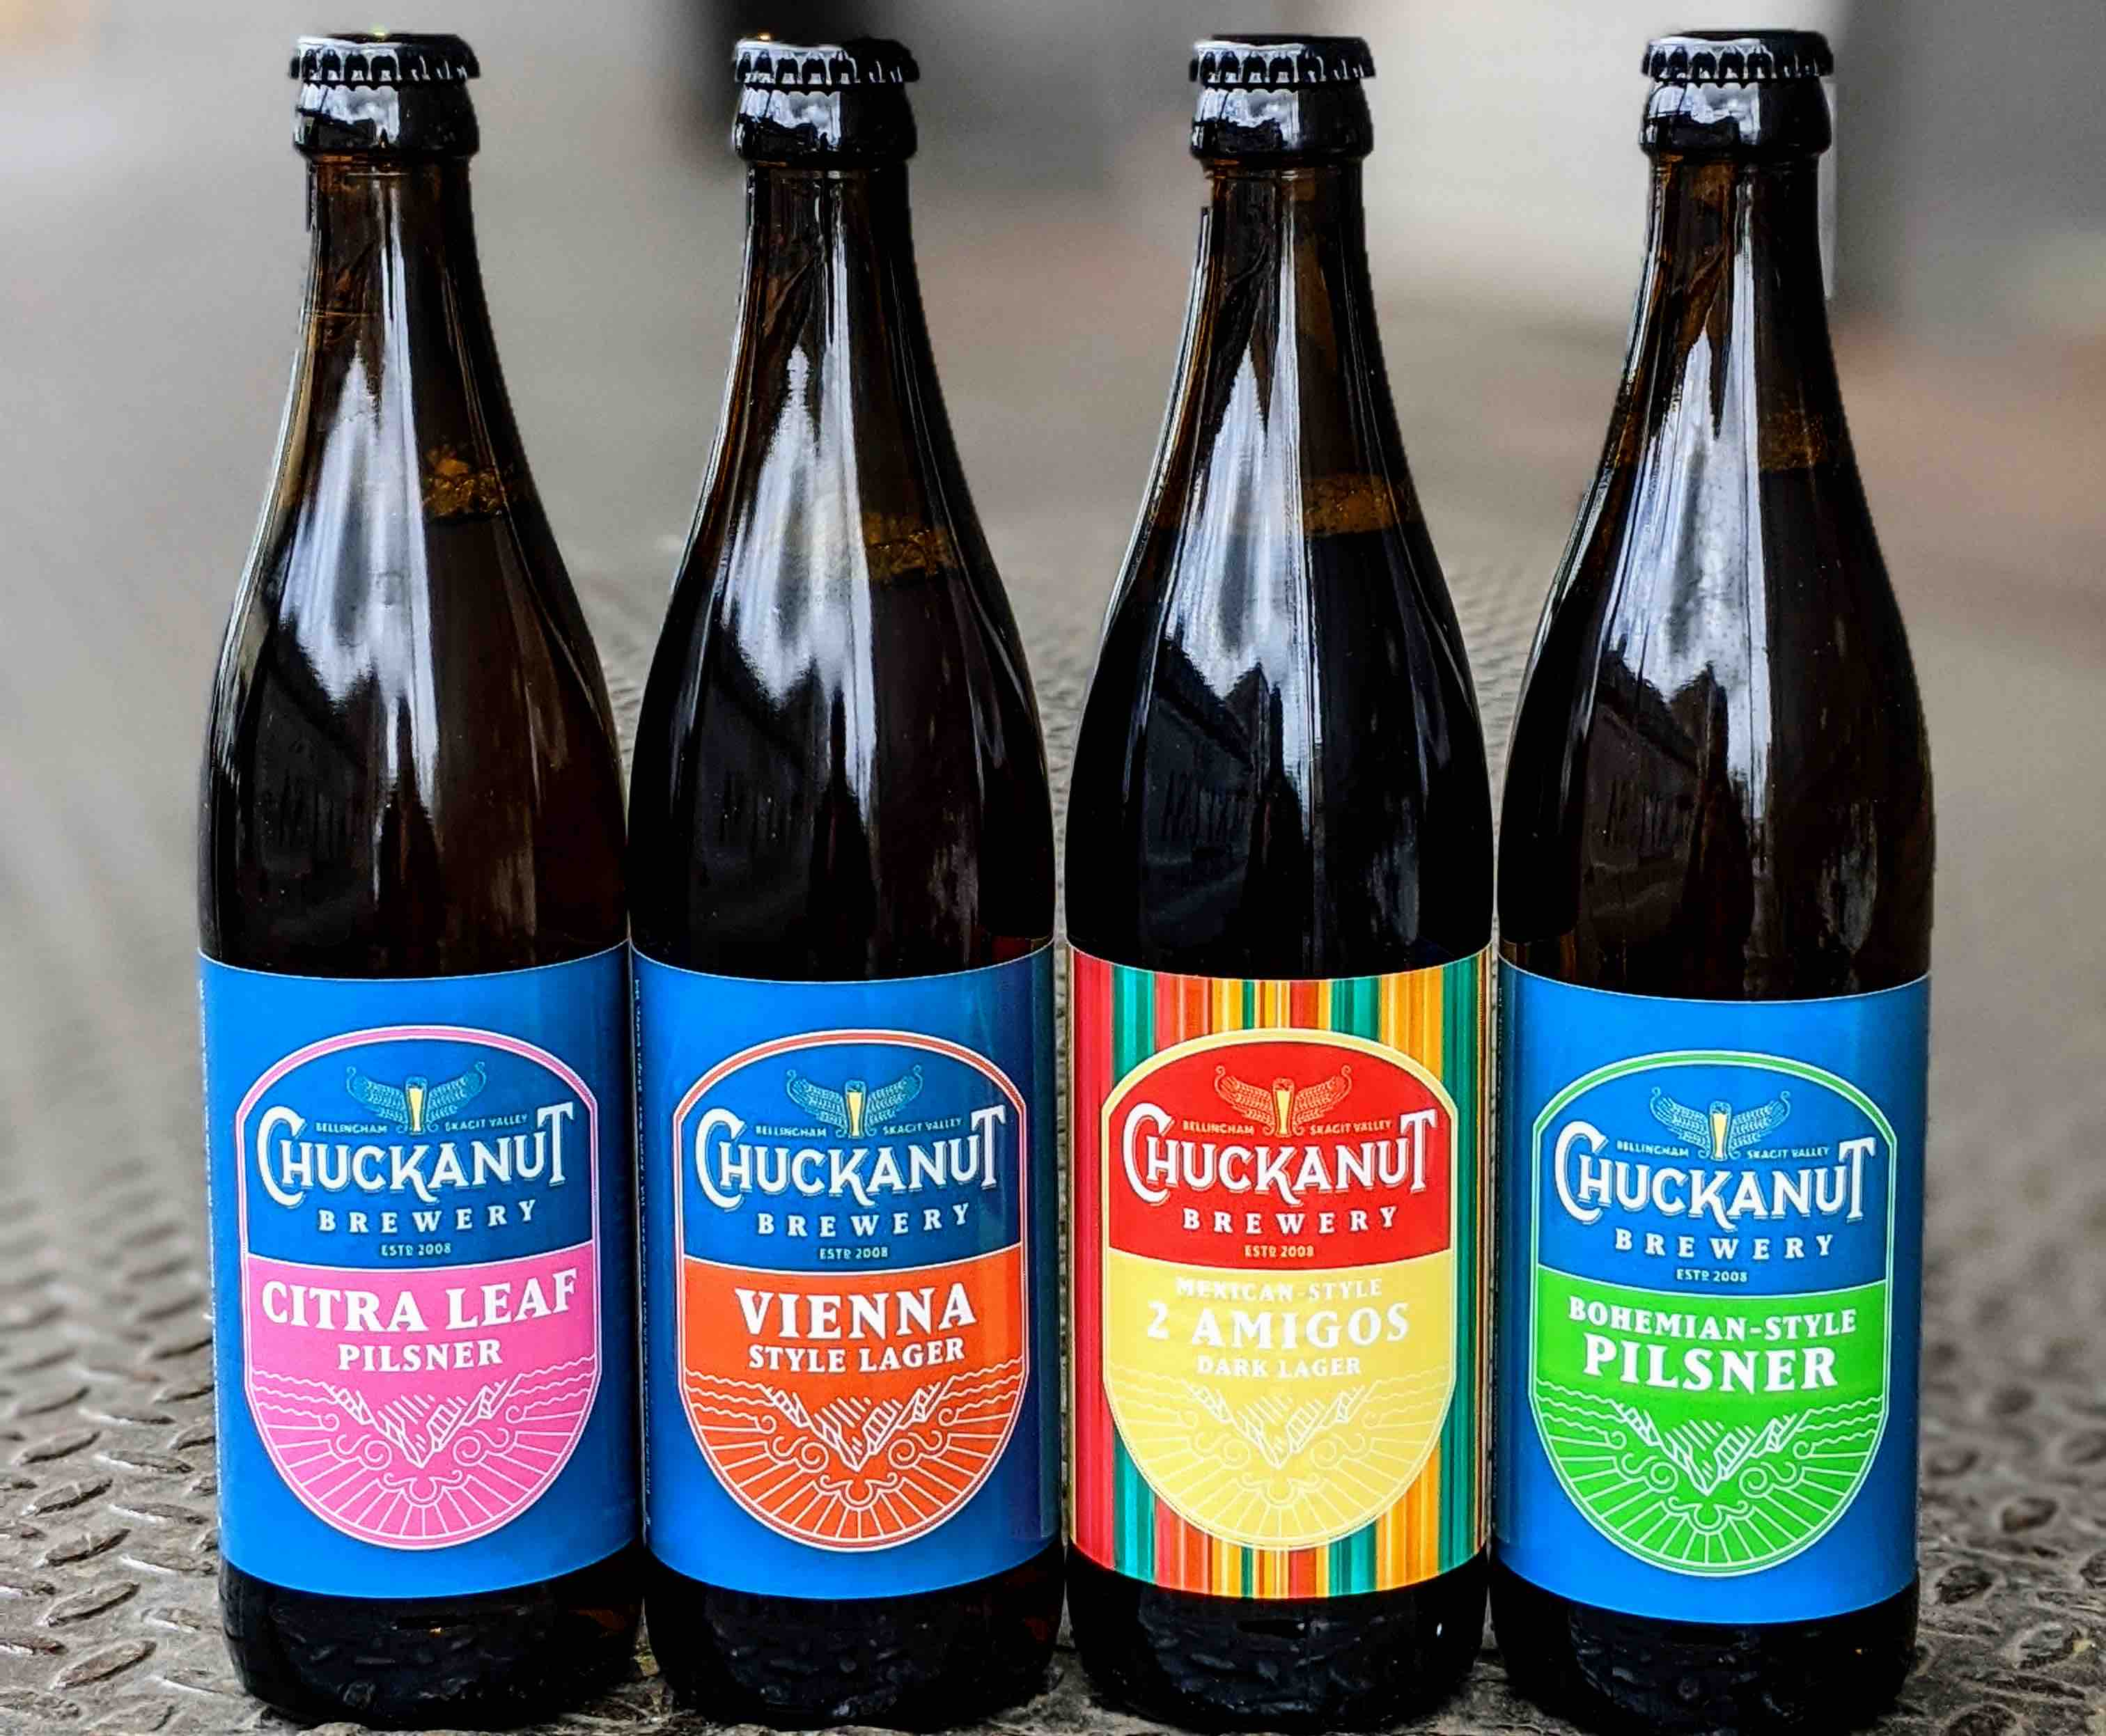 image of Chuckanut Brewery bottles courtesy of Day One Distribution